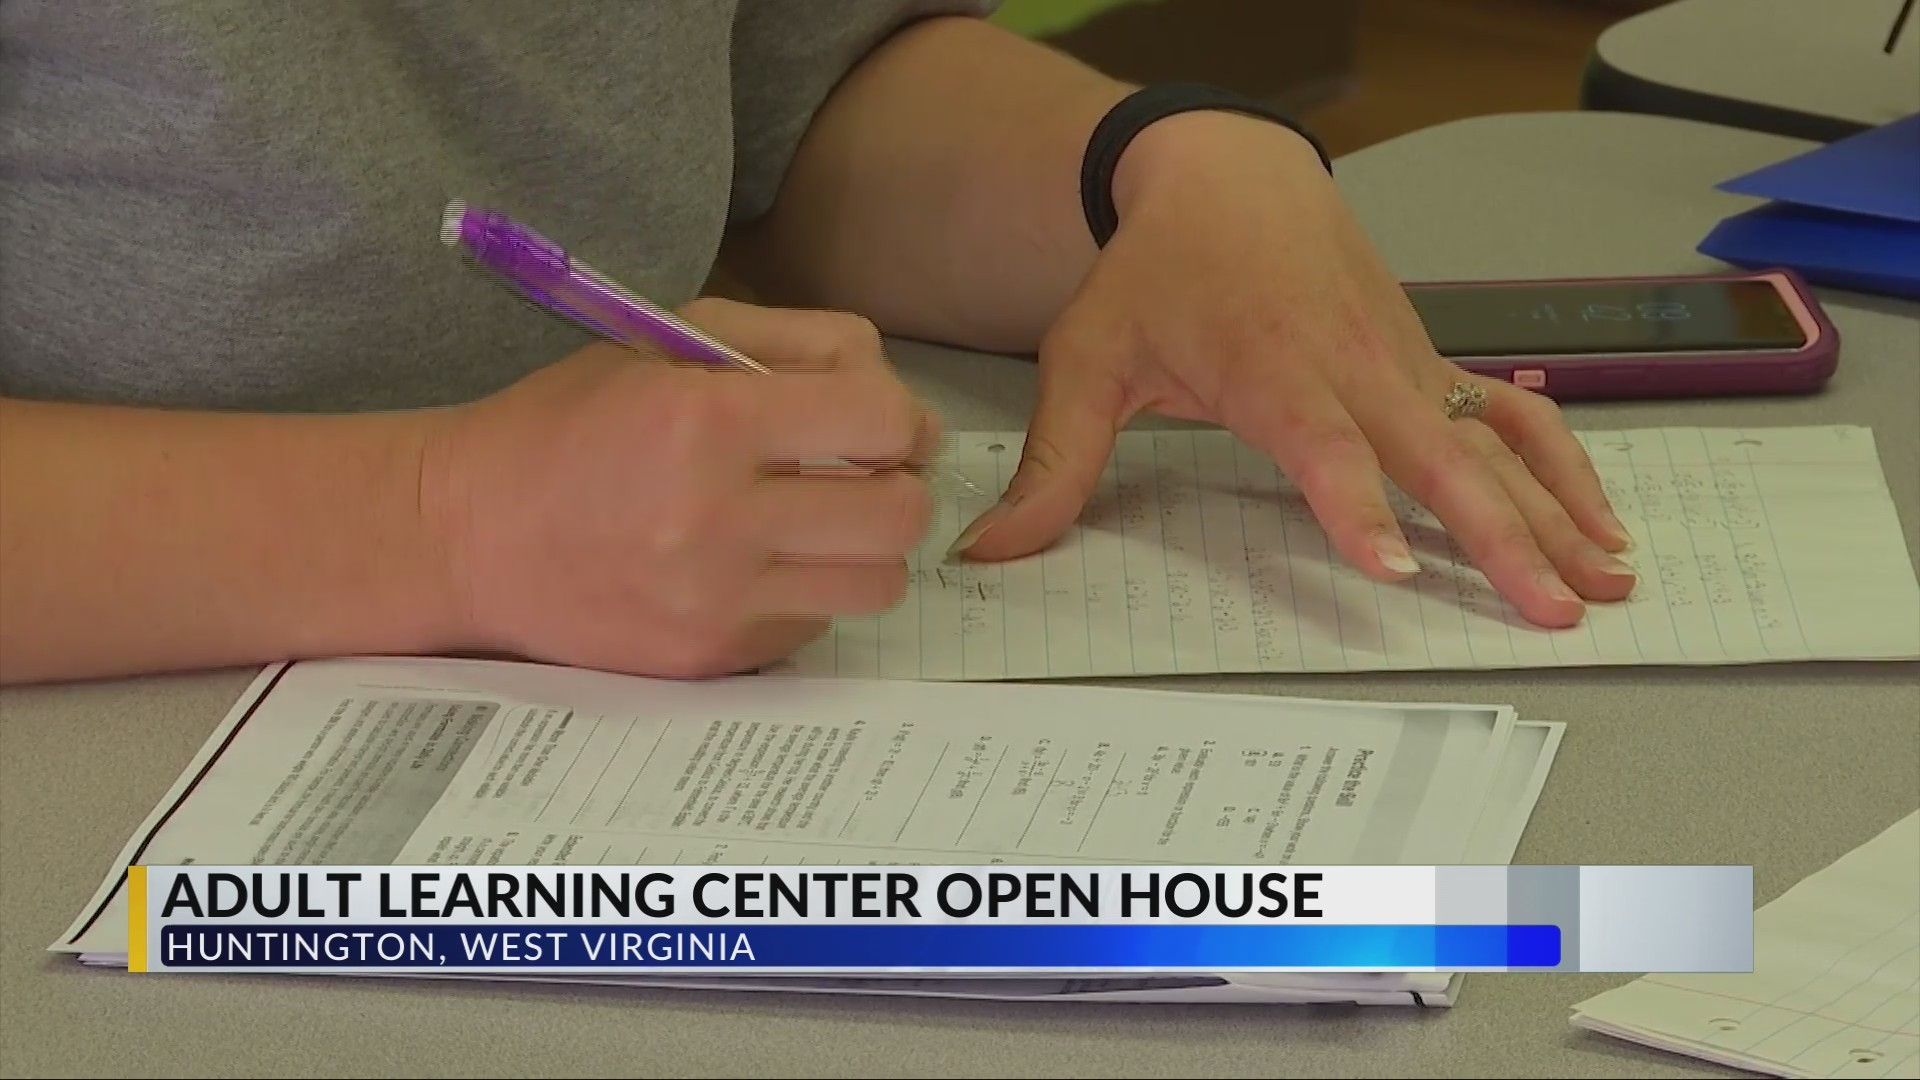 Adult Learning Center provides adults with range of free courses, prepares them for new opportunities